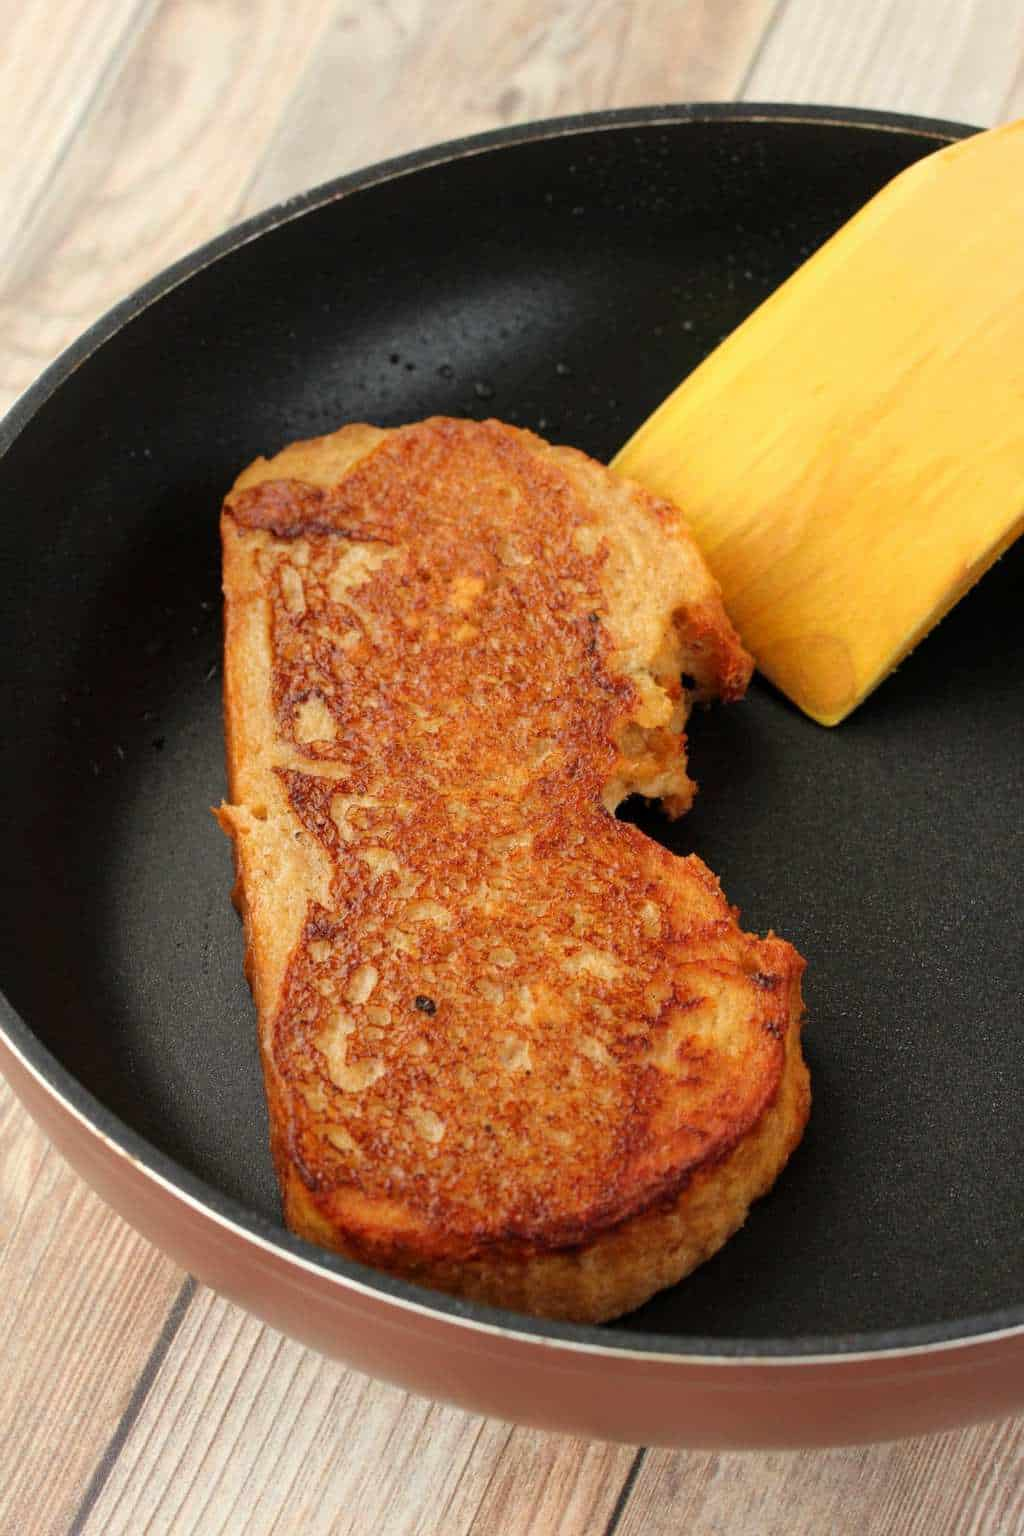 A slice of vegan french toast in a frying pan with a spatula.